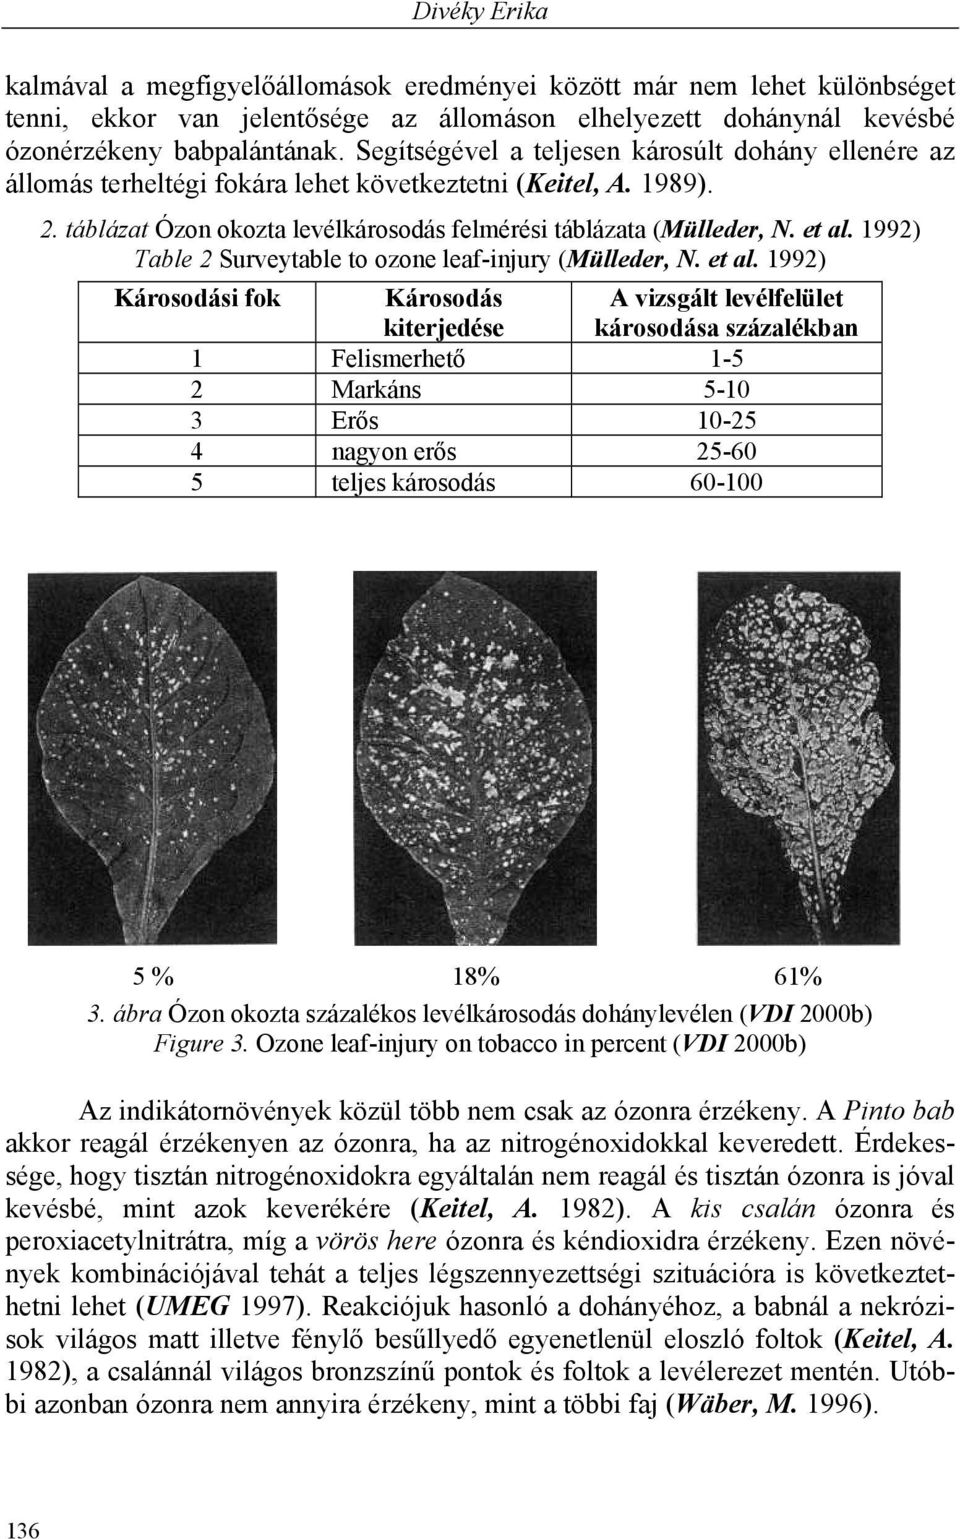 1992) Table 2 Surveytable to ozone leaf-injury (Mülleder, N. et al.